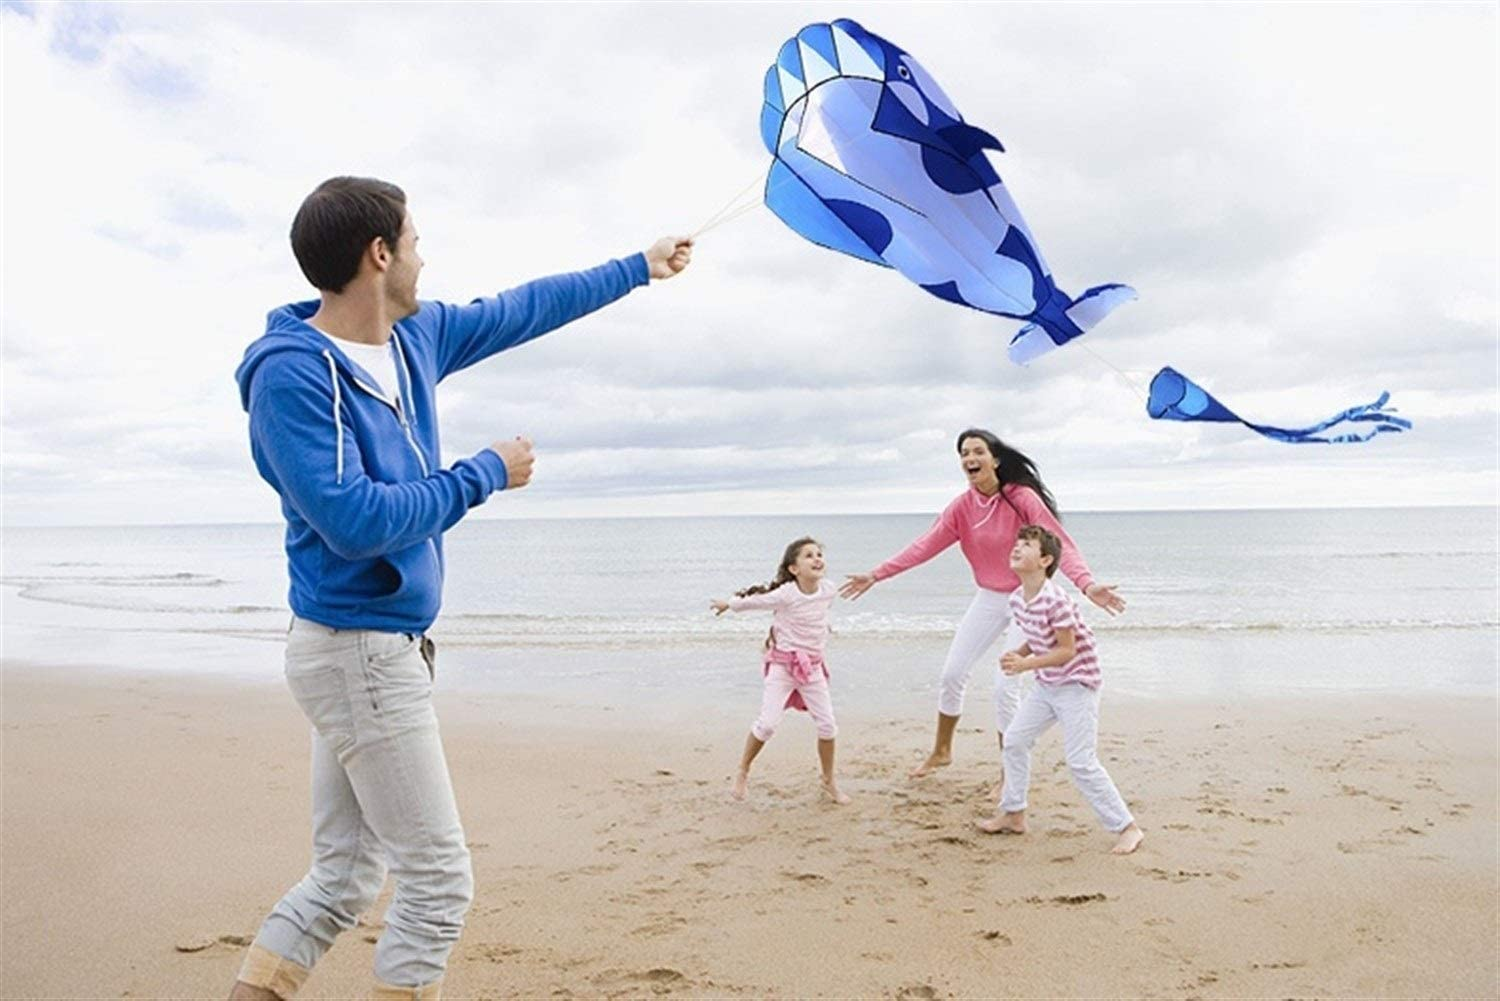 ARONG Interesting Kite, Kids Kite Fun Kites for Kids Easy to Fly with Outdoor Sports Software Whale Kite Suitable for Beach or Park (Color : Blue Color)